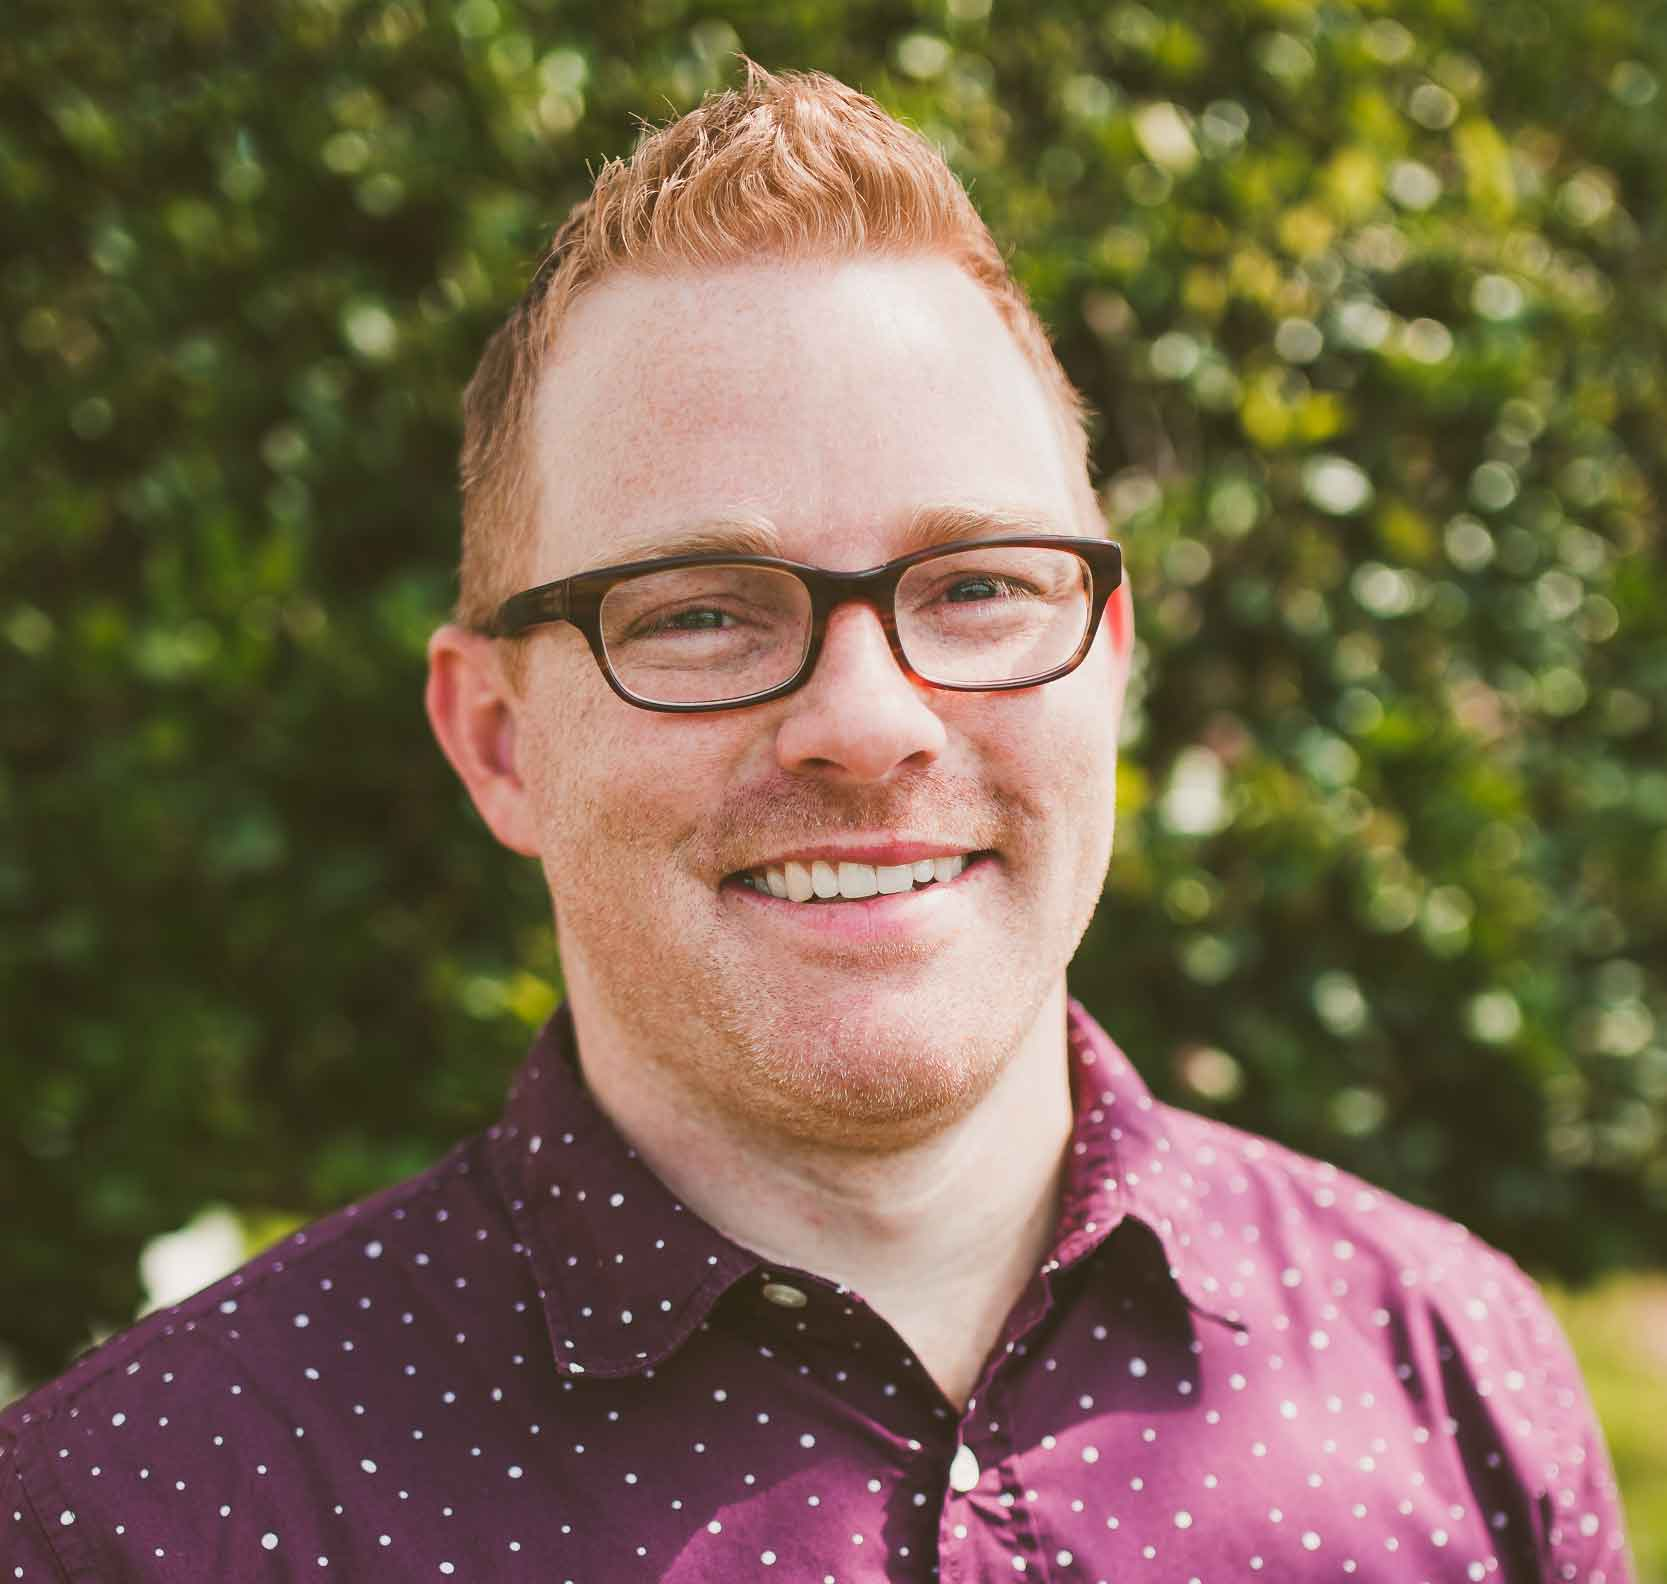 Drew Tucker - Drew came to faith at the age of 10 as his parents faithfully shared the gospel with him. Upon graduating from Liberty University, Drew and Jessi were married in 2005 and moved to Raleigh, NC where they would both graduate from Southeastern Baptist Theological Seminary in 2008. Upon Drew's completion of the church planting residency in 2009, the Tuckers were sent out from North Wake Church to plant Covenant Life Church who would eventually plant The Heights Church in 2016. Drew is dad to Emma and Rhett and serves The Heights Church as a staff pastor with the primary roles of preaching, leadership and care of the church.